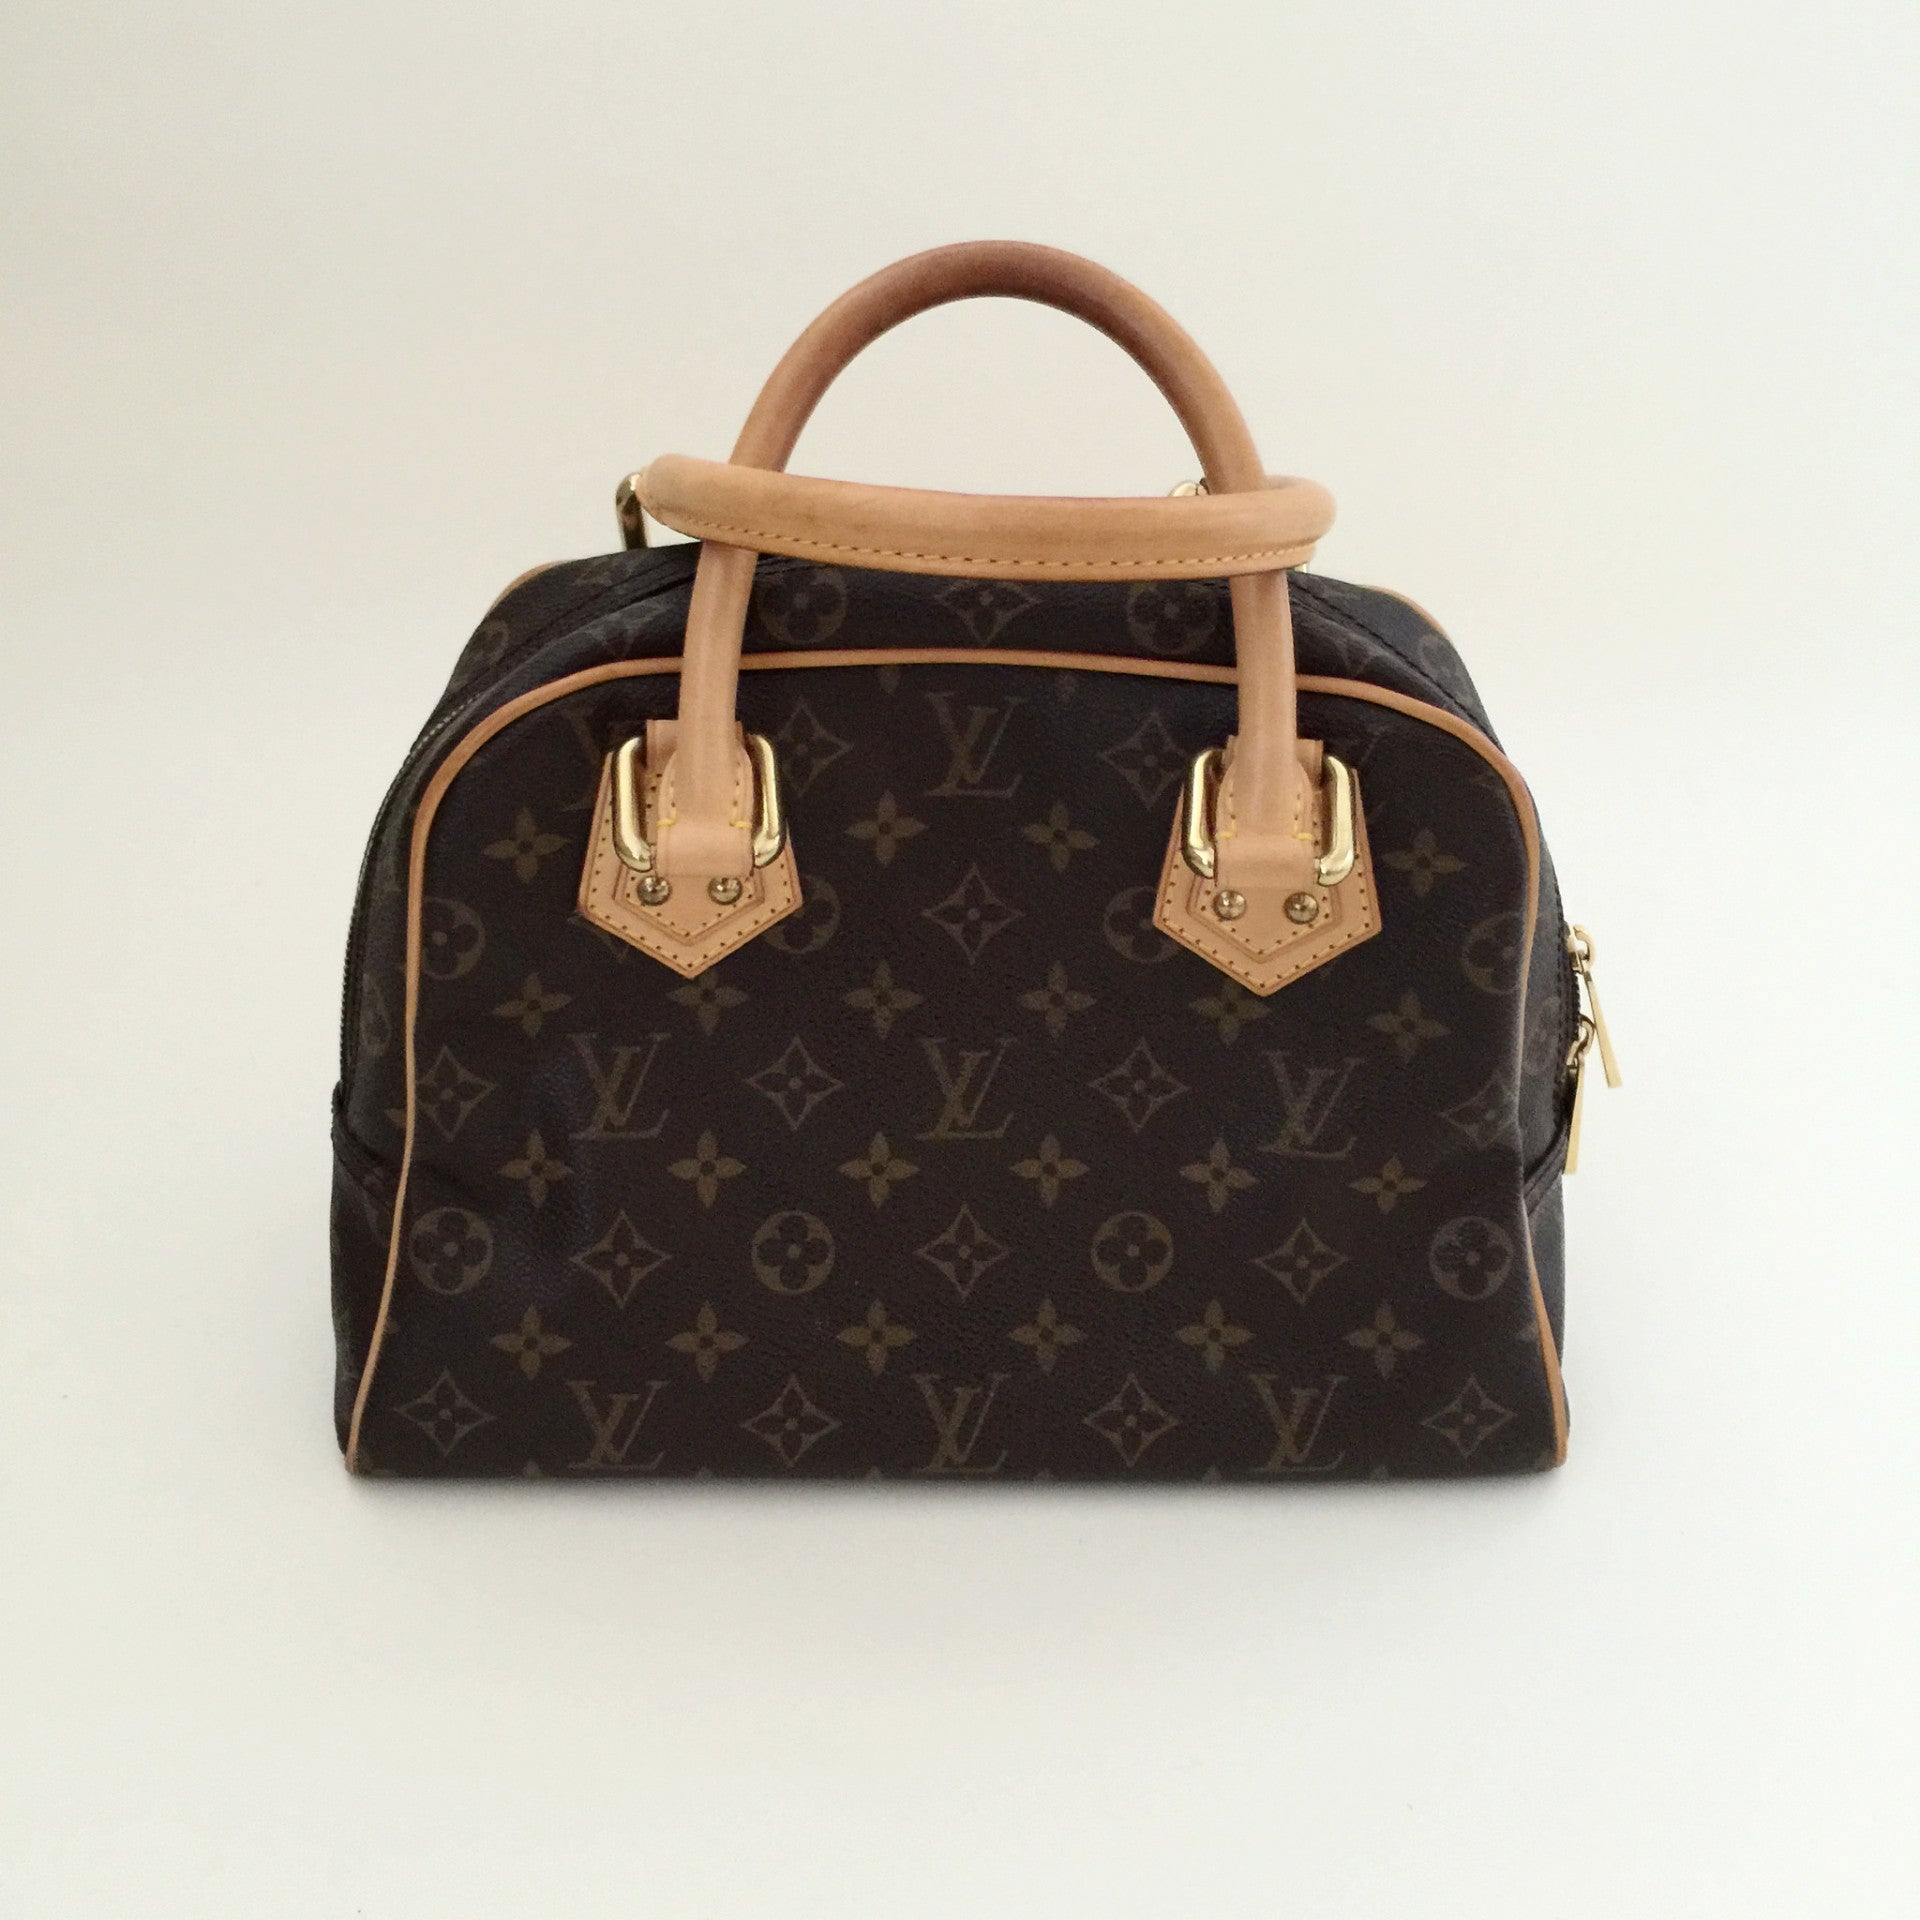 Authentic LOUIS VUITTON Manhatten PM